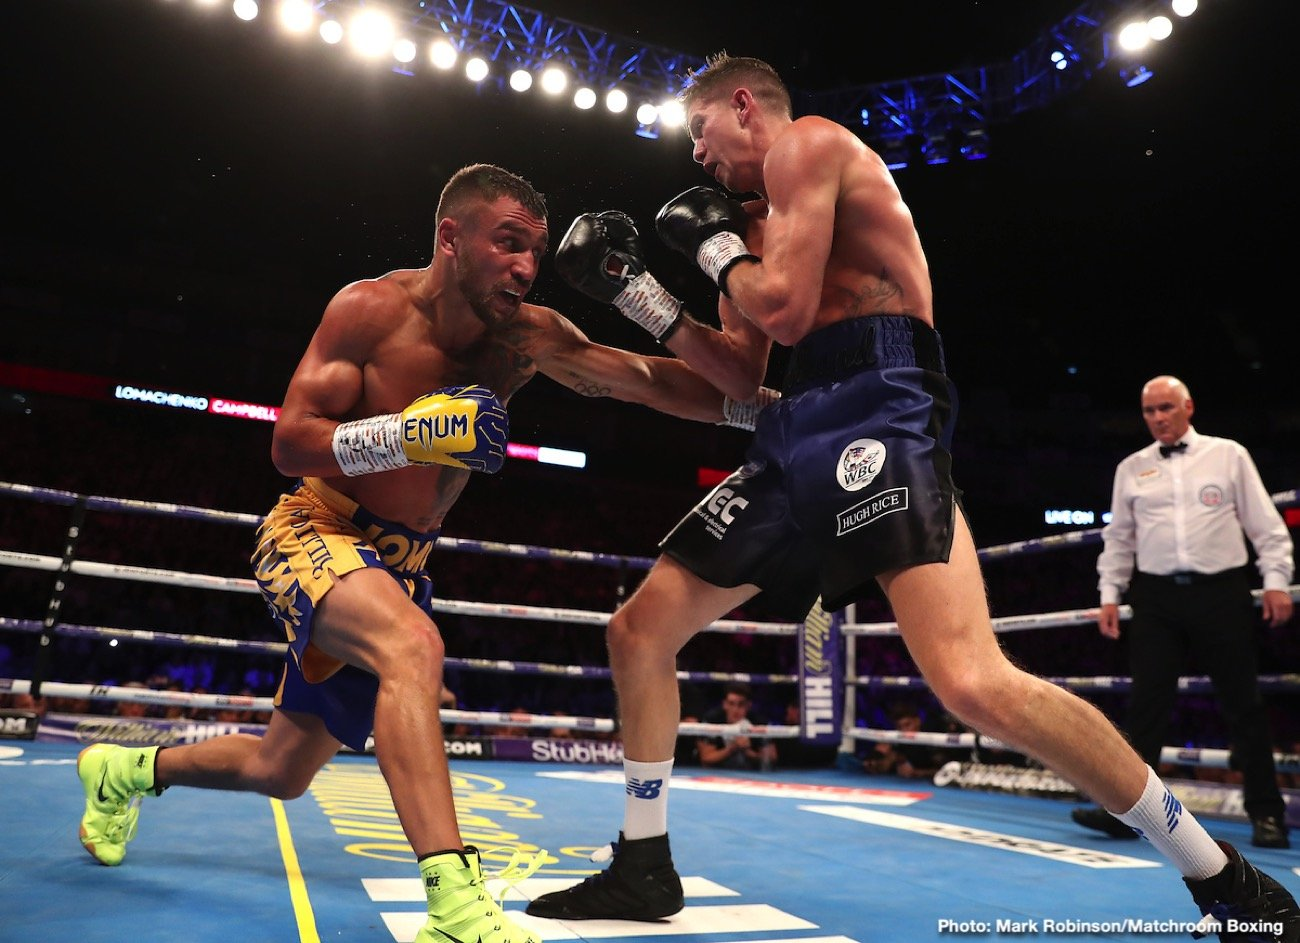 WBC - WBA/WBC/WBO lightweight champion Vasiliy Lomachenko is poised to be the World Boxing Council's next Franchise champion. Interim WBC champion Devin Haney is saying that he believes that the 31-year-old Lomachenko (14-1, 10 KOs) will be given the WBC Franchise tag. When that happens, Haney says he'll likely be moved up to WBC 'regular' lightweight champion status.